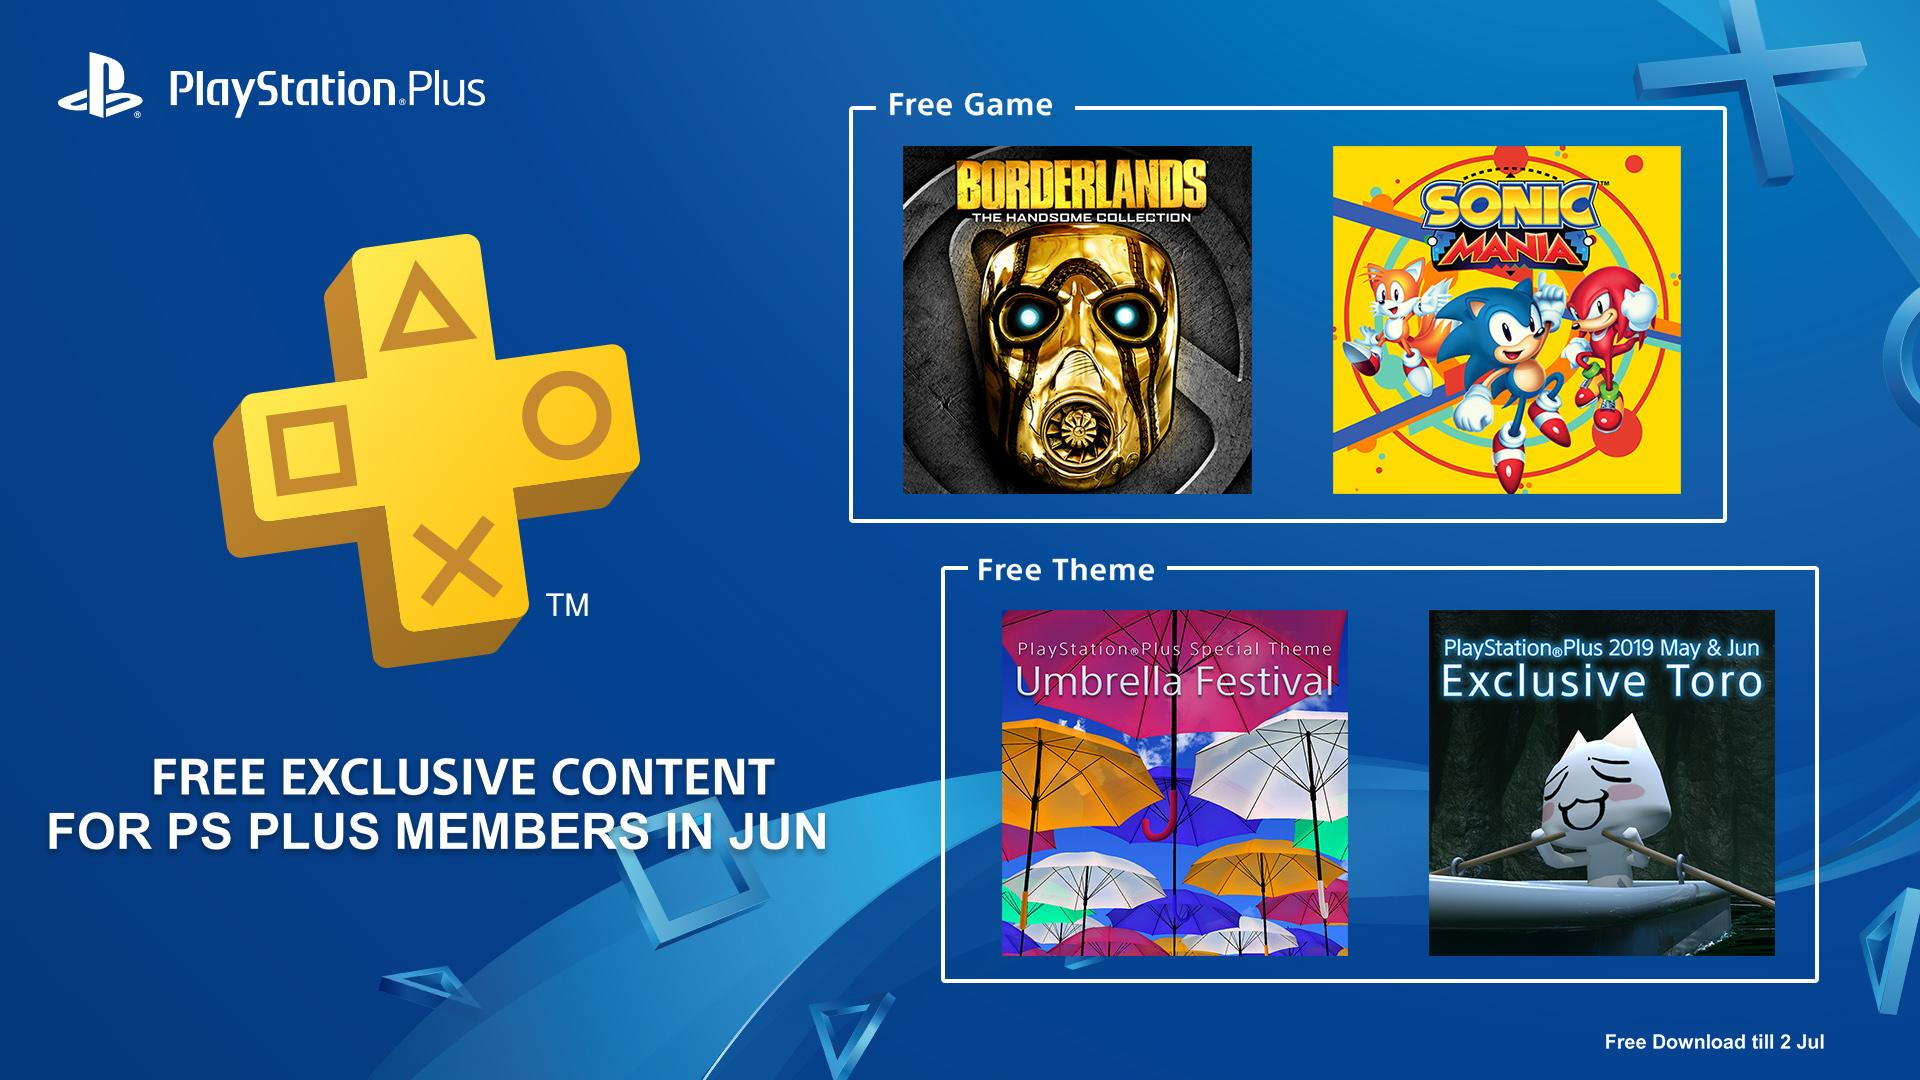 The June PlayStation Plus Games Are Sonic Mania and Borderlands